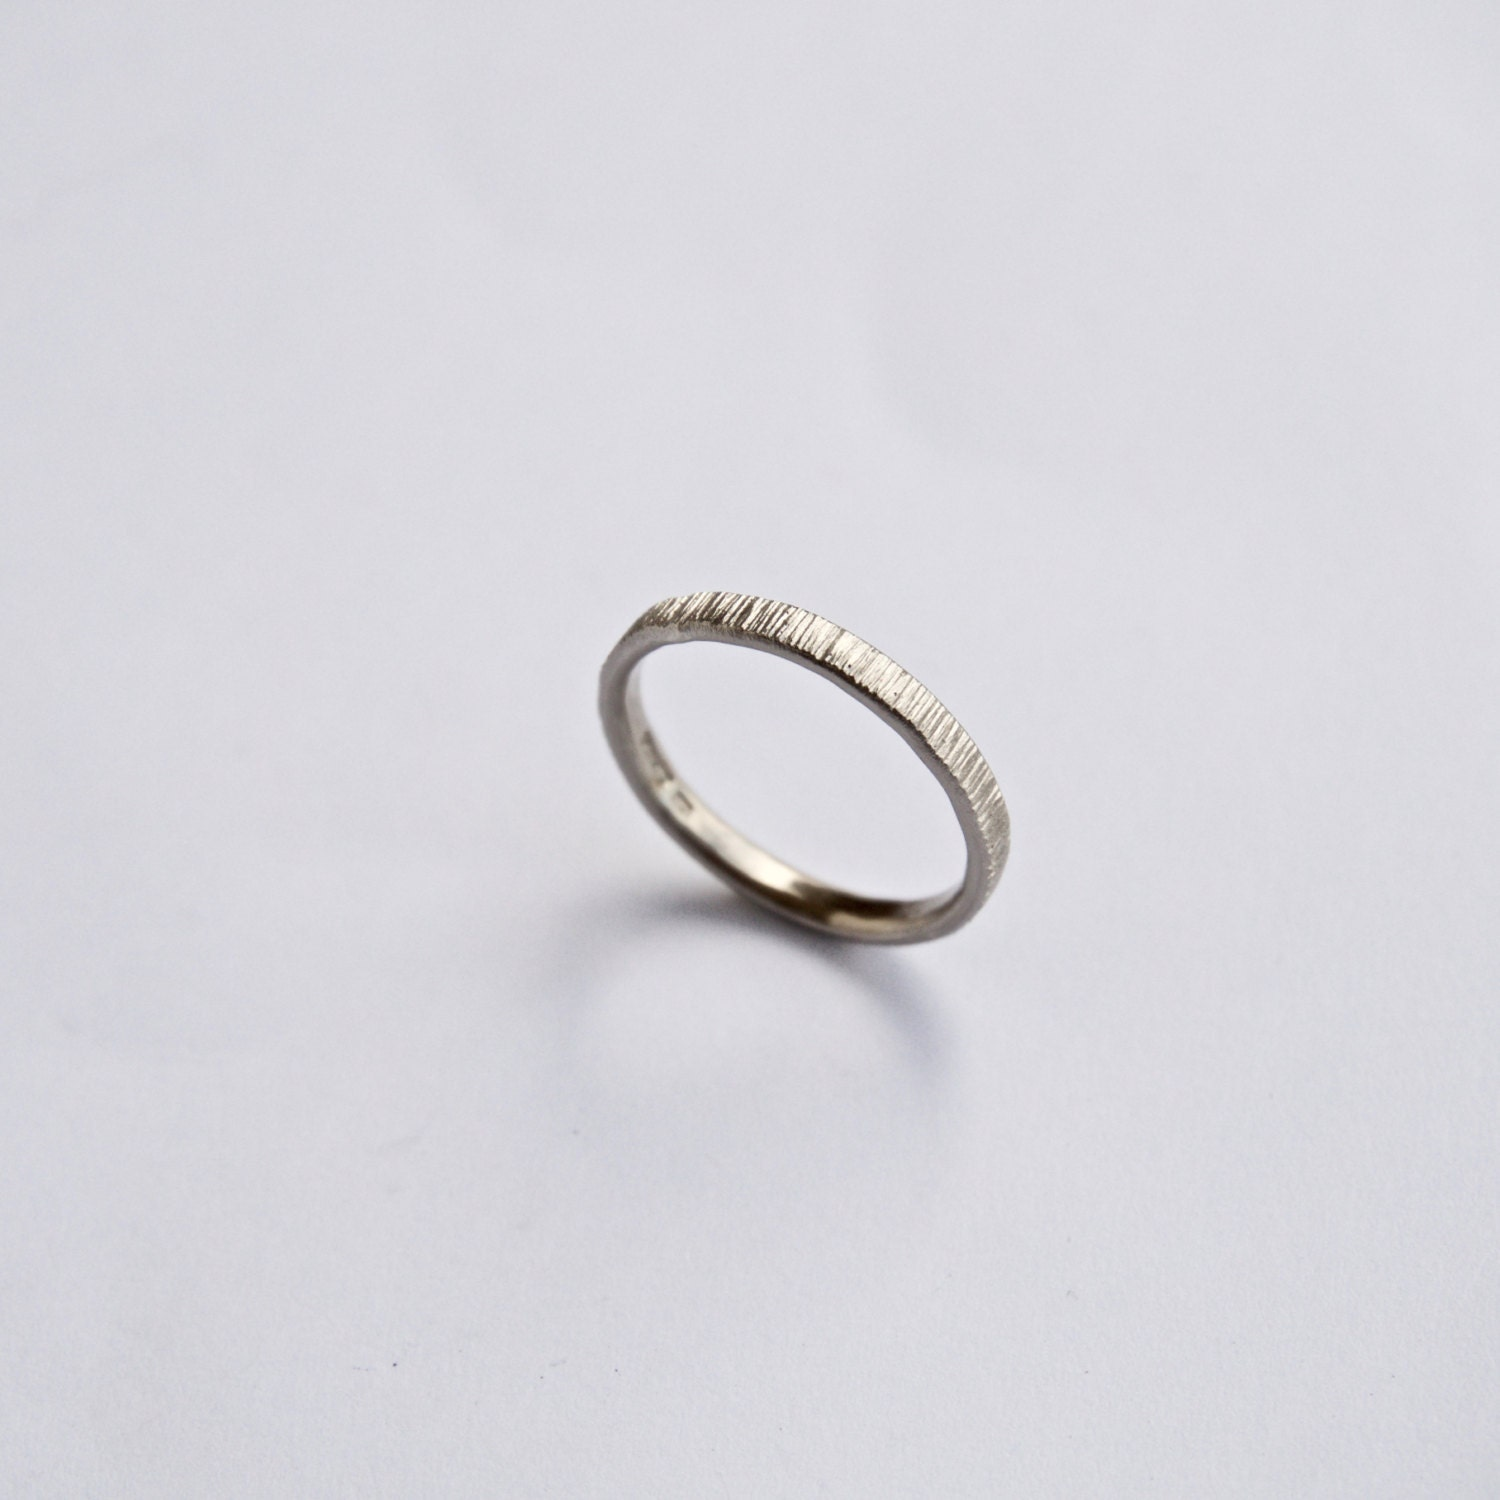 flat for lebrusan rings latest thin view band bands harmony ringarabel fairtrade intended gold wedding